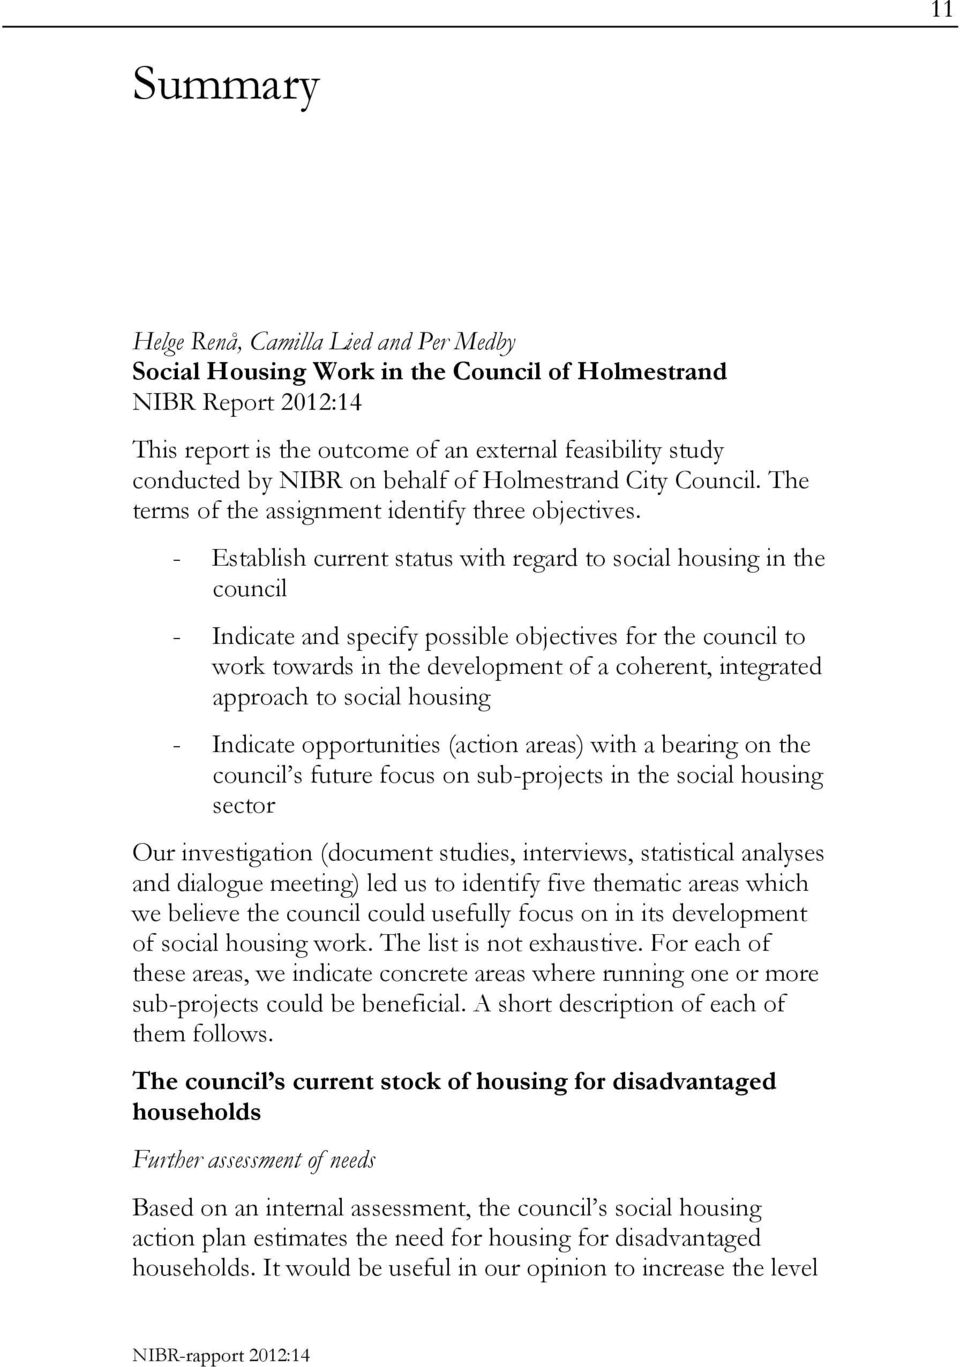 - Establish current status with regard to social housing in the council - Indicate and specify possible objectives for the council to work towards in the development of a coherent, integrated